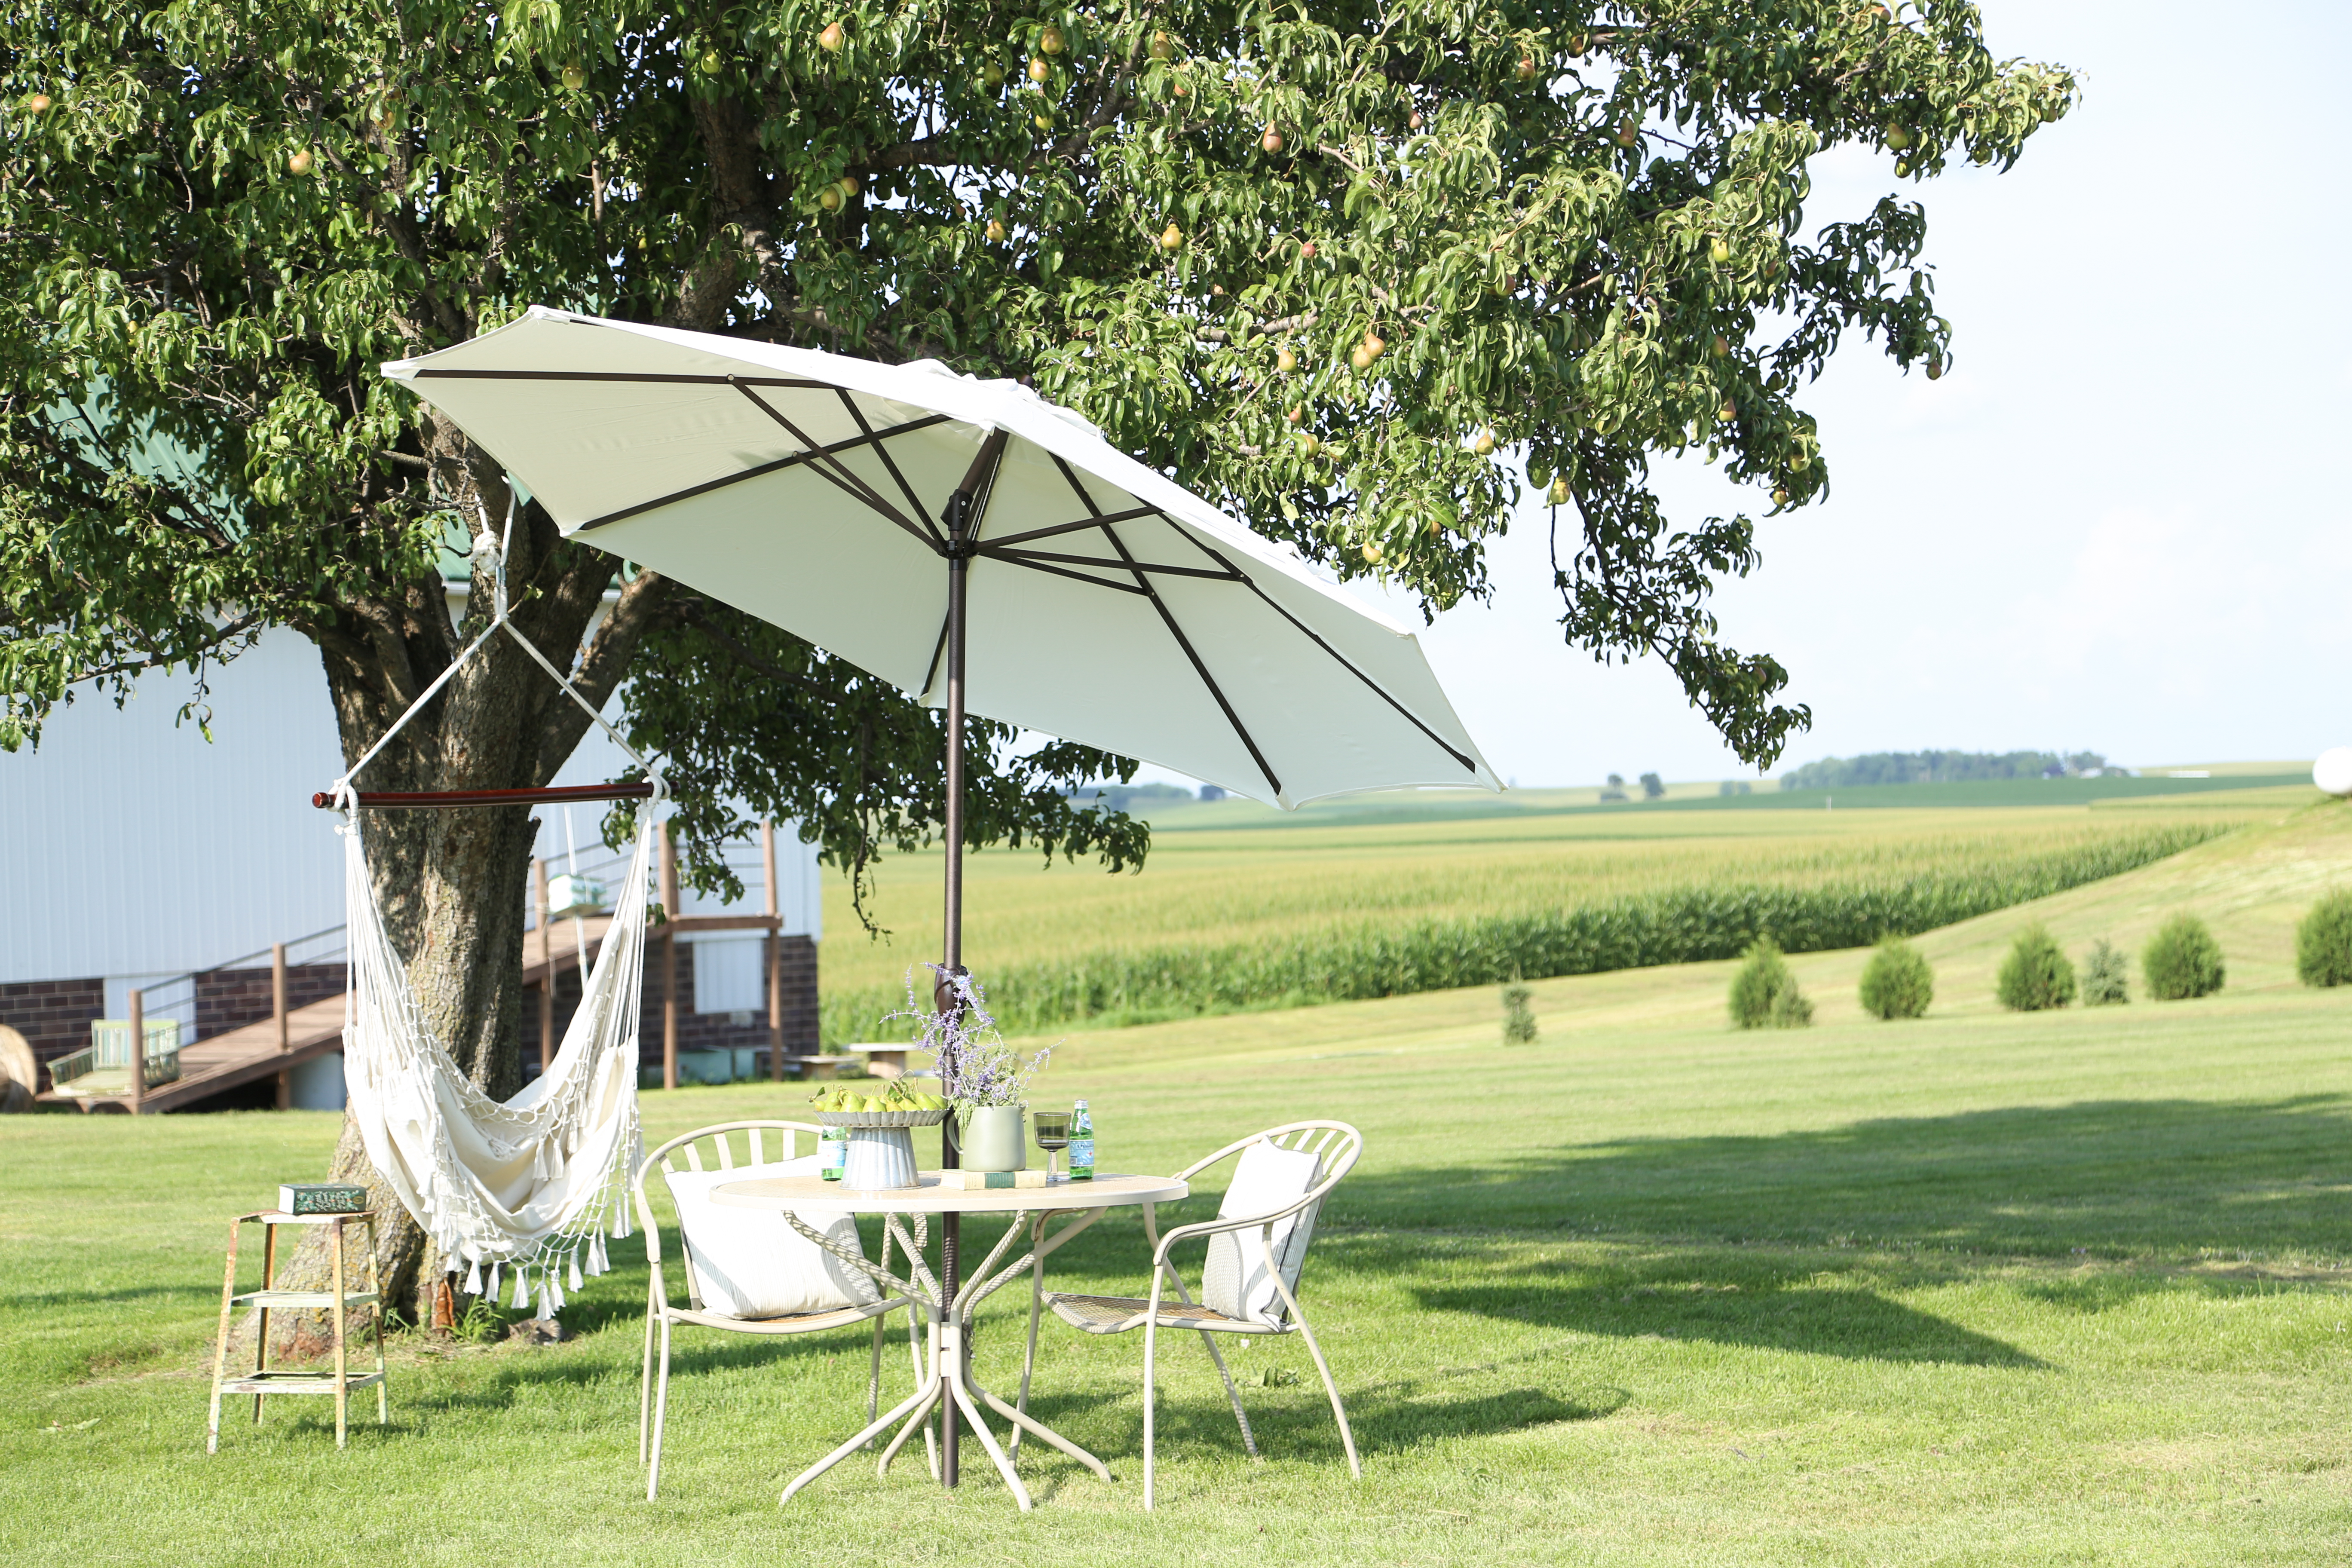 A small table and chairs with an umbrella is is perfect setup for the farm backyard.